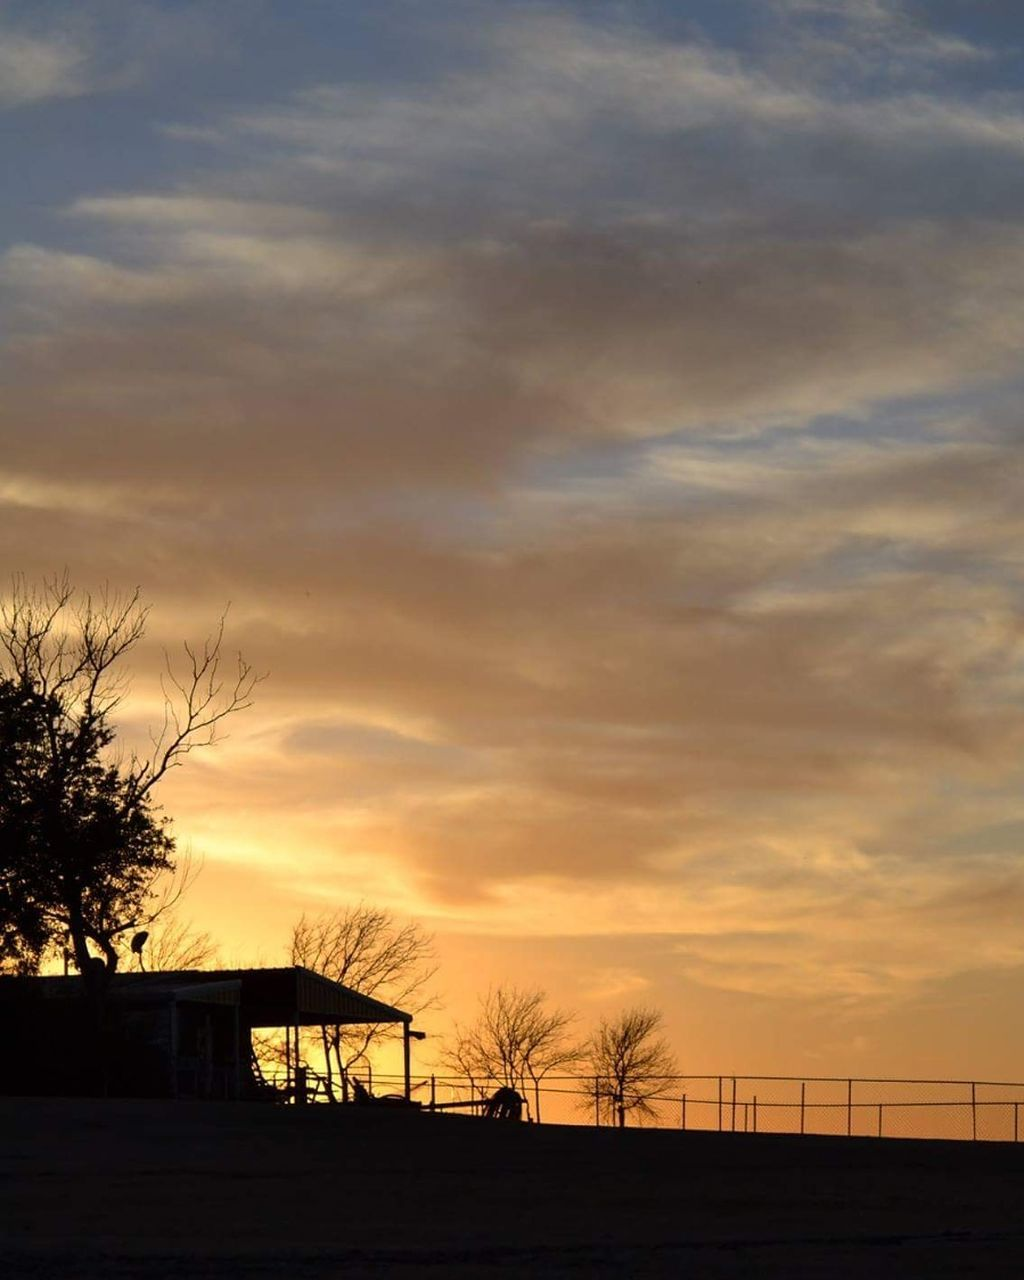 sunset, built structure, silhouette, sky, cloud - sky, tree, architecture, no people, nature, beauty in nature, scenics, tranquility, tranquil scene, outdoors, building exterior, day